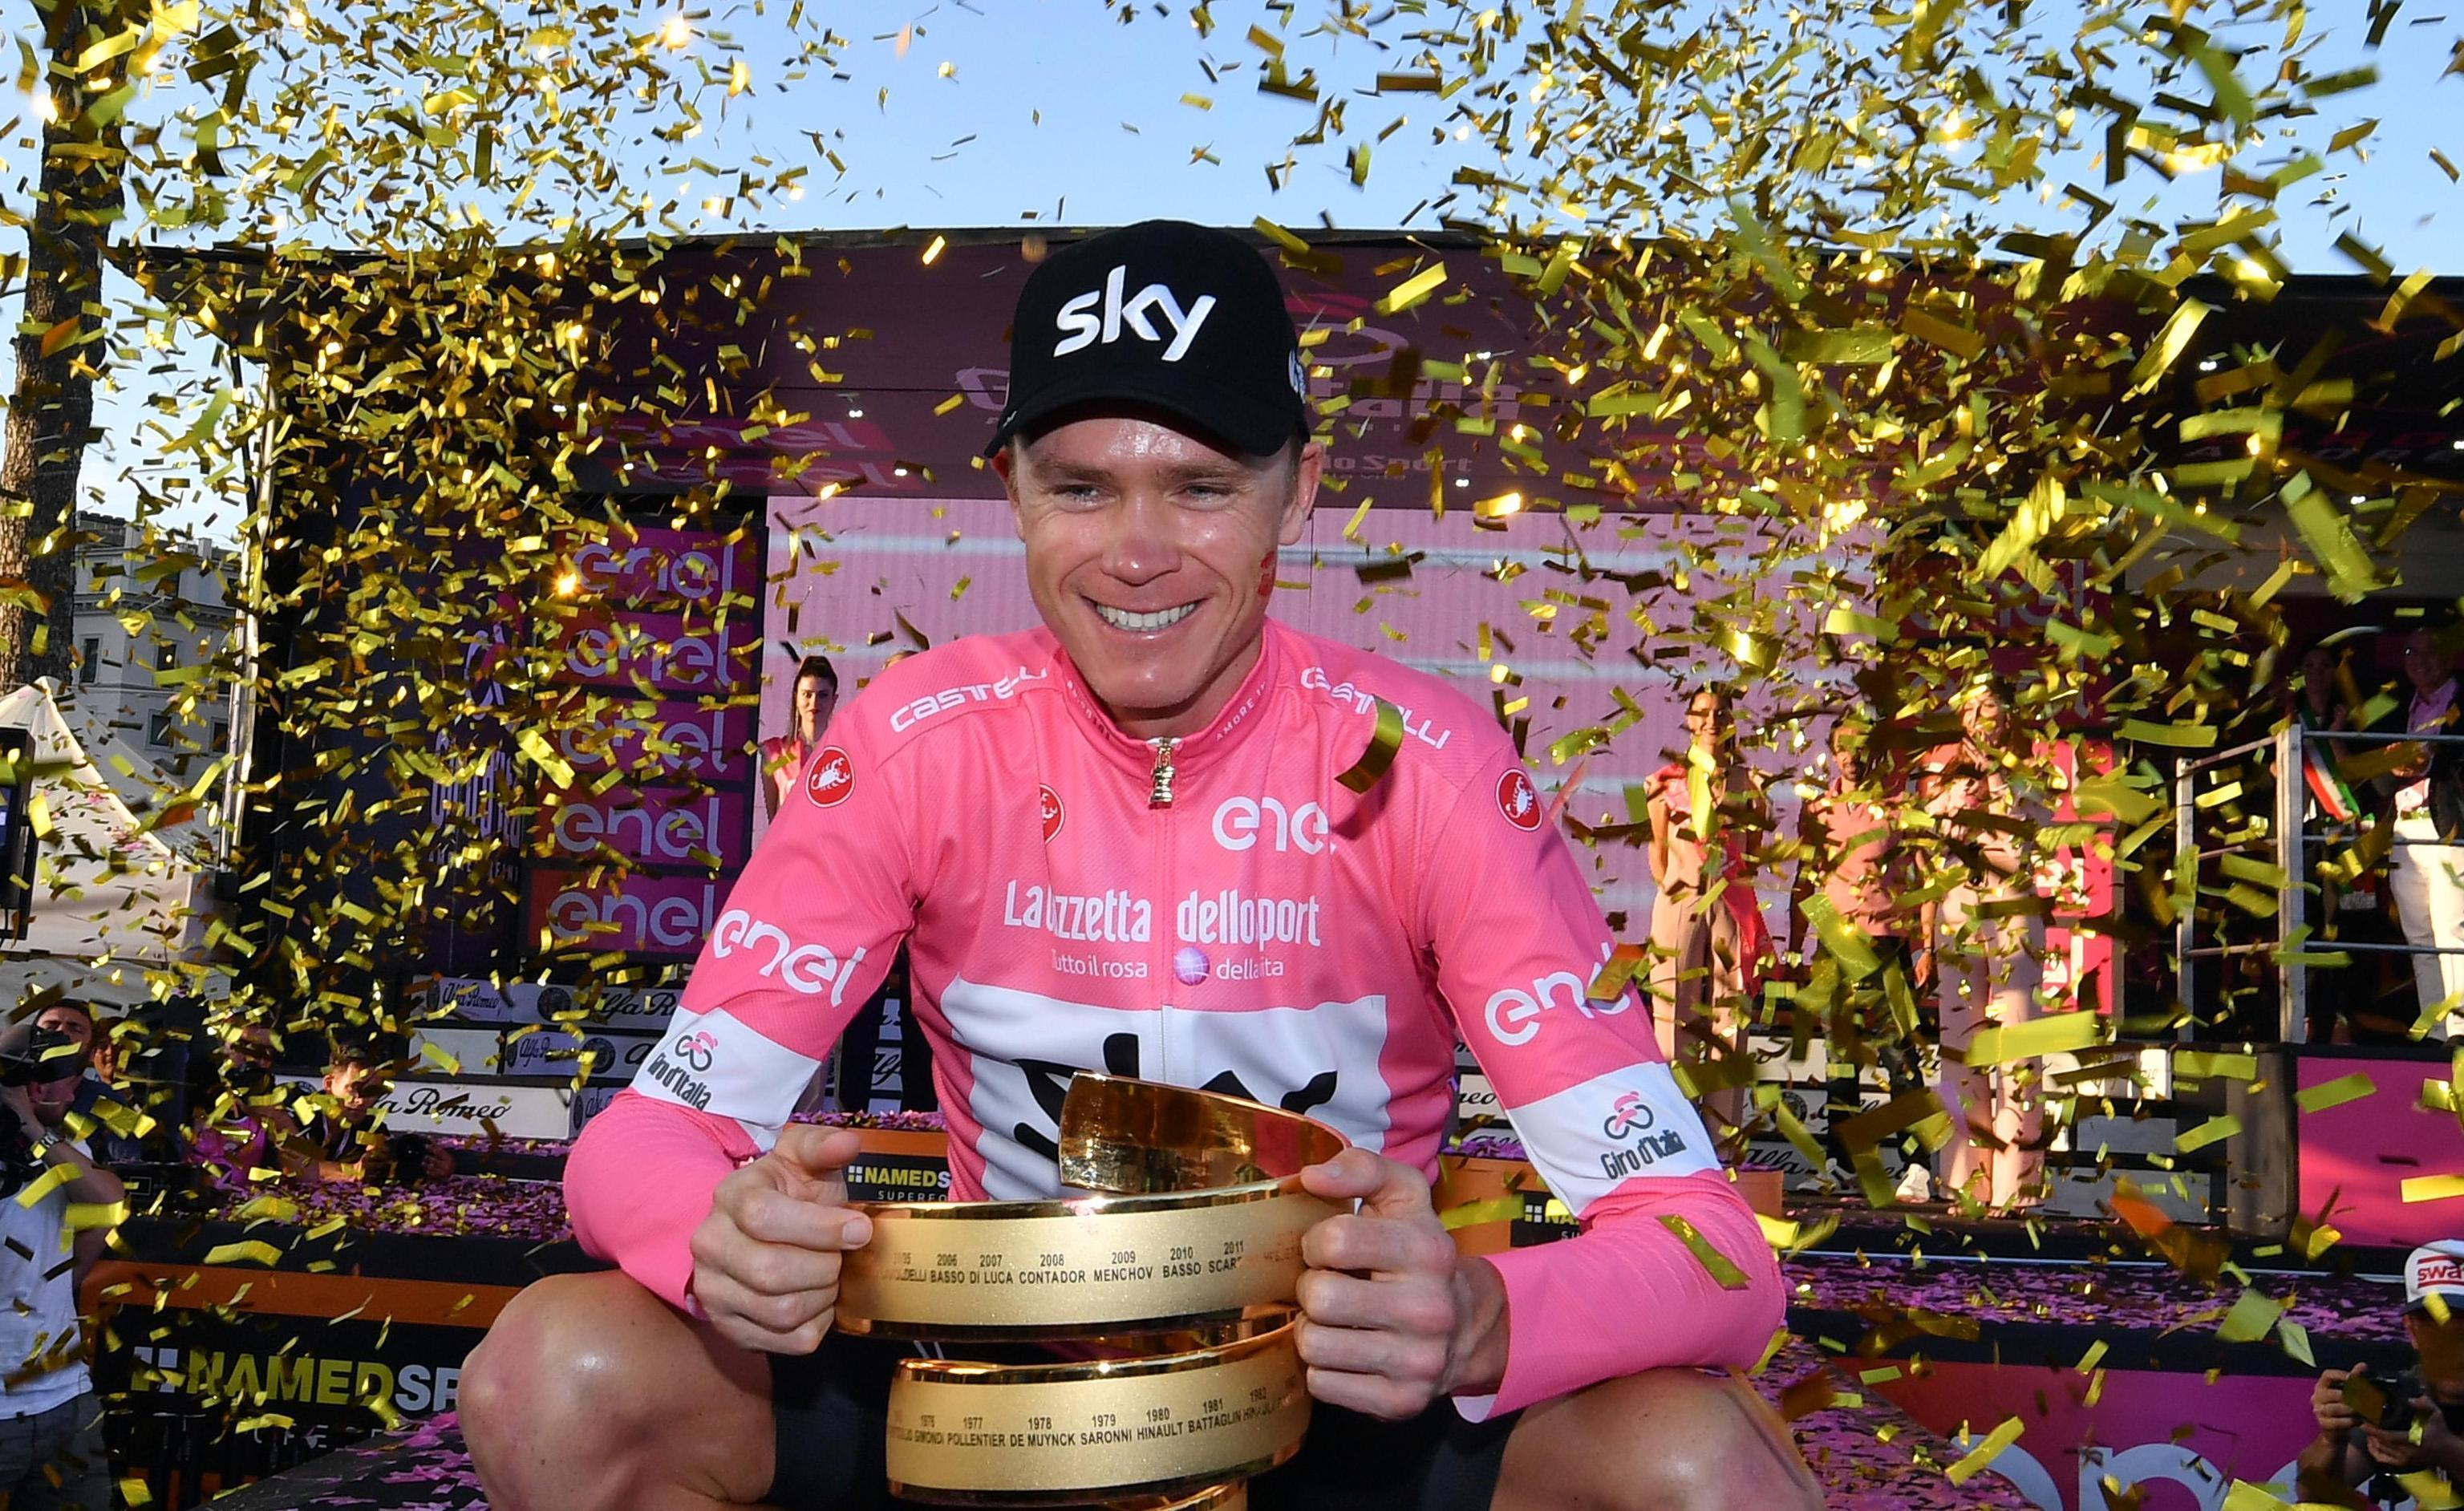 Chris Froome celebrated victory in the Giro d'Italia in May